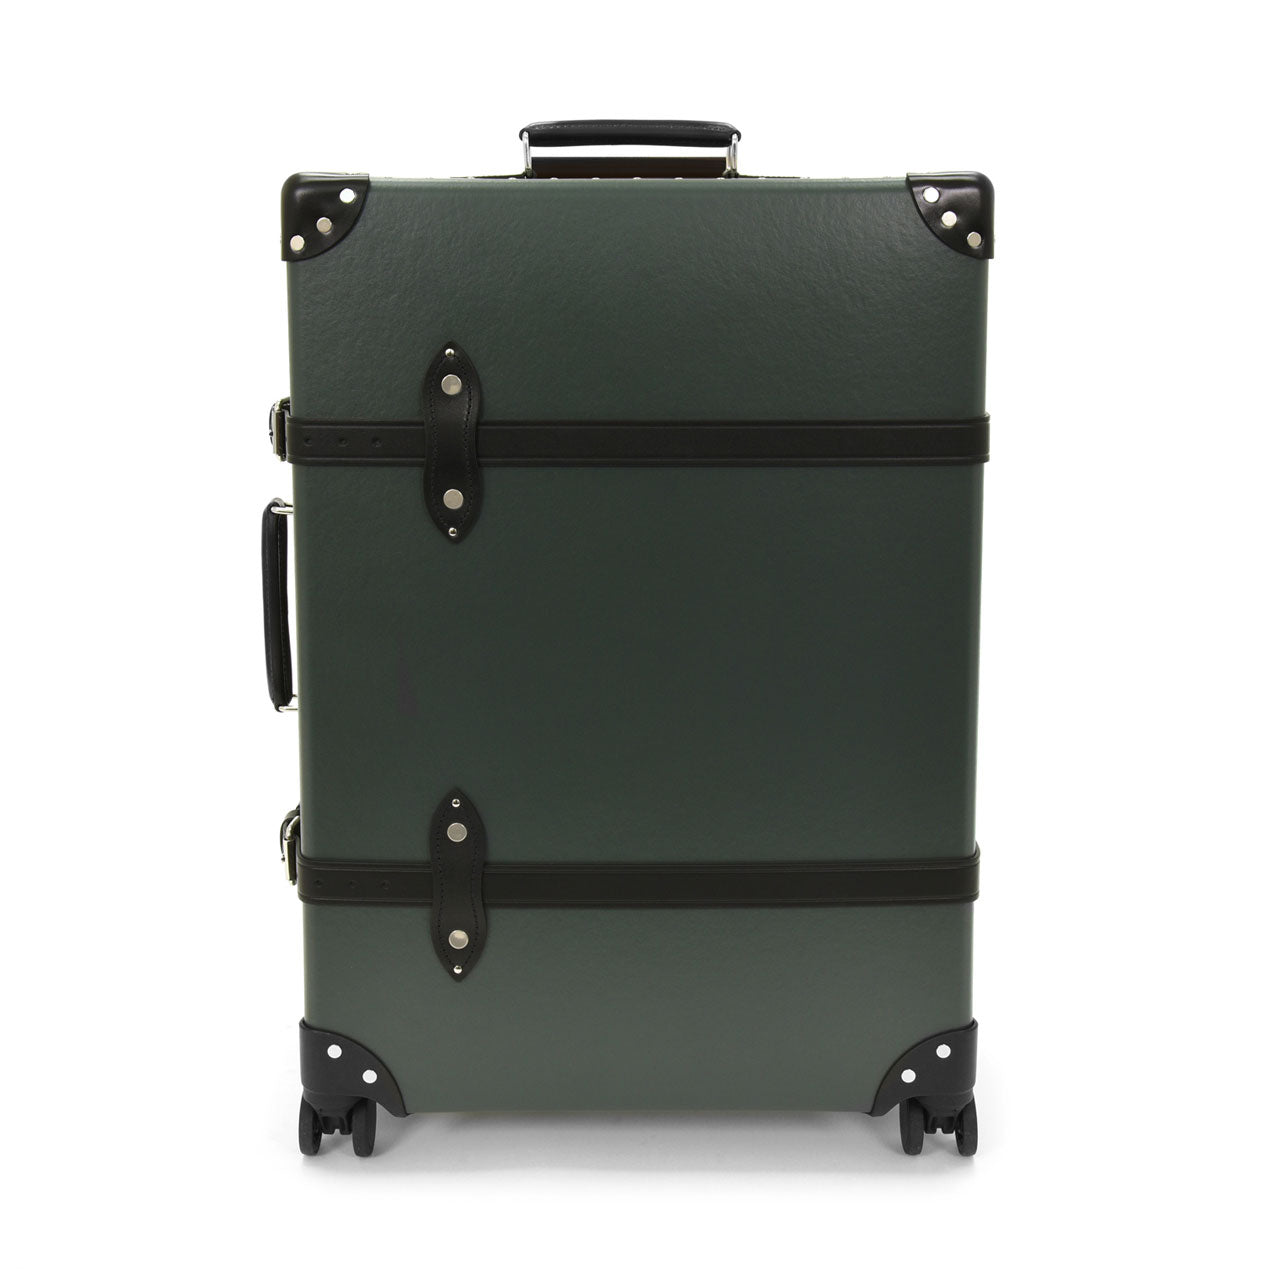 Globe-Trotter No Time to Die Check-In Trolley Case